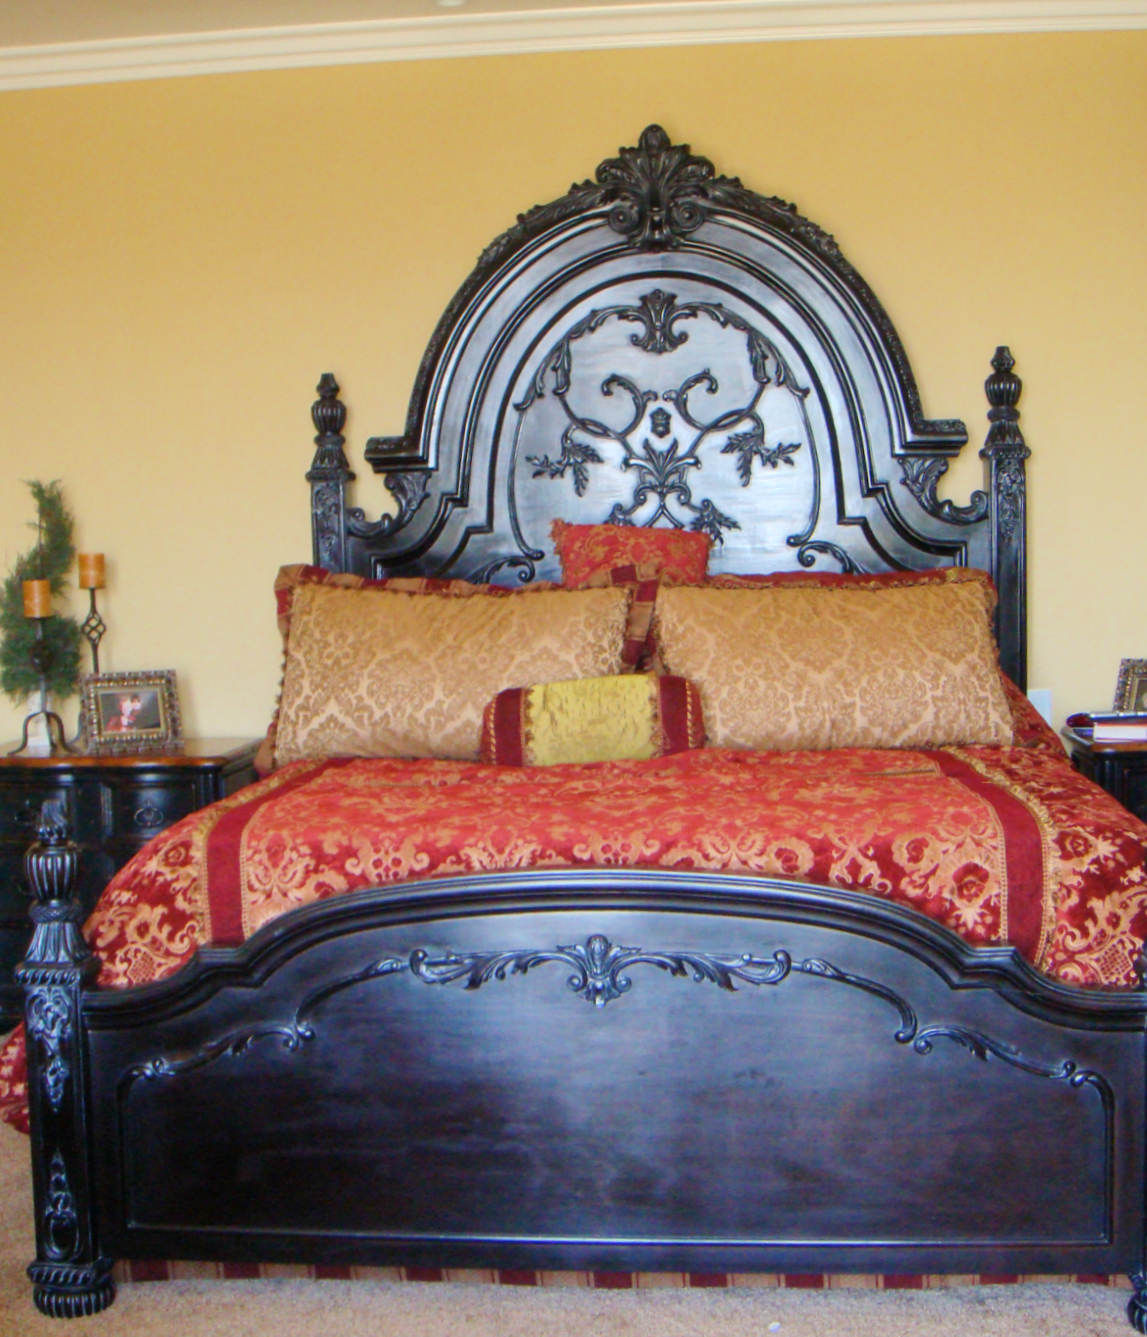 One of a Kind Bed